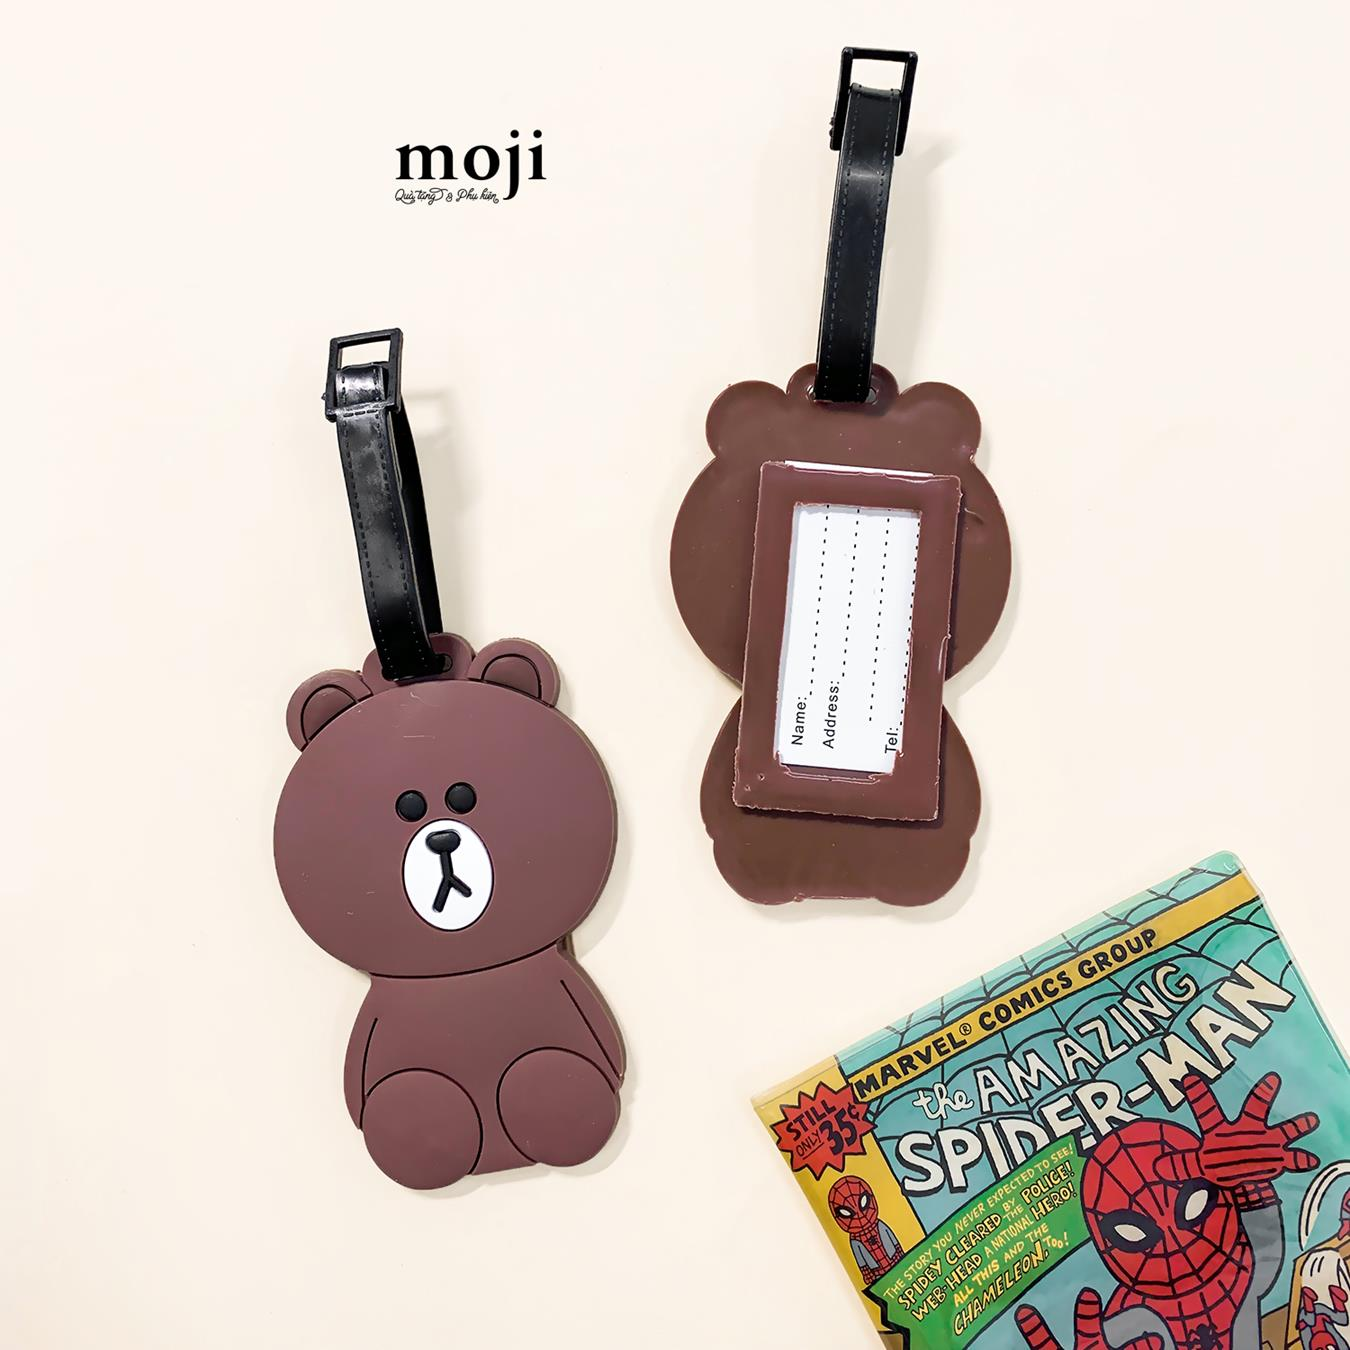 https://storage.googleapis.com/cdn.nhanh.vn/store/7534/psCT/20190405/12836092/Luggage_tag_Gau_Brown_ngoi_(19040053_ch).jpg